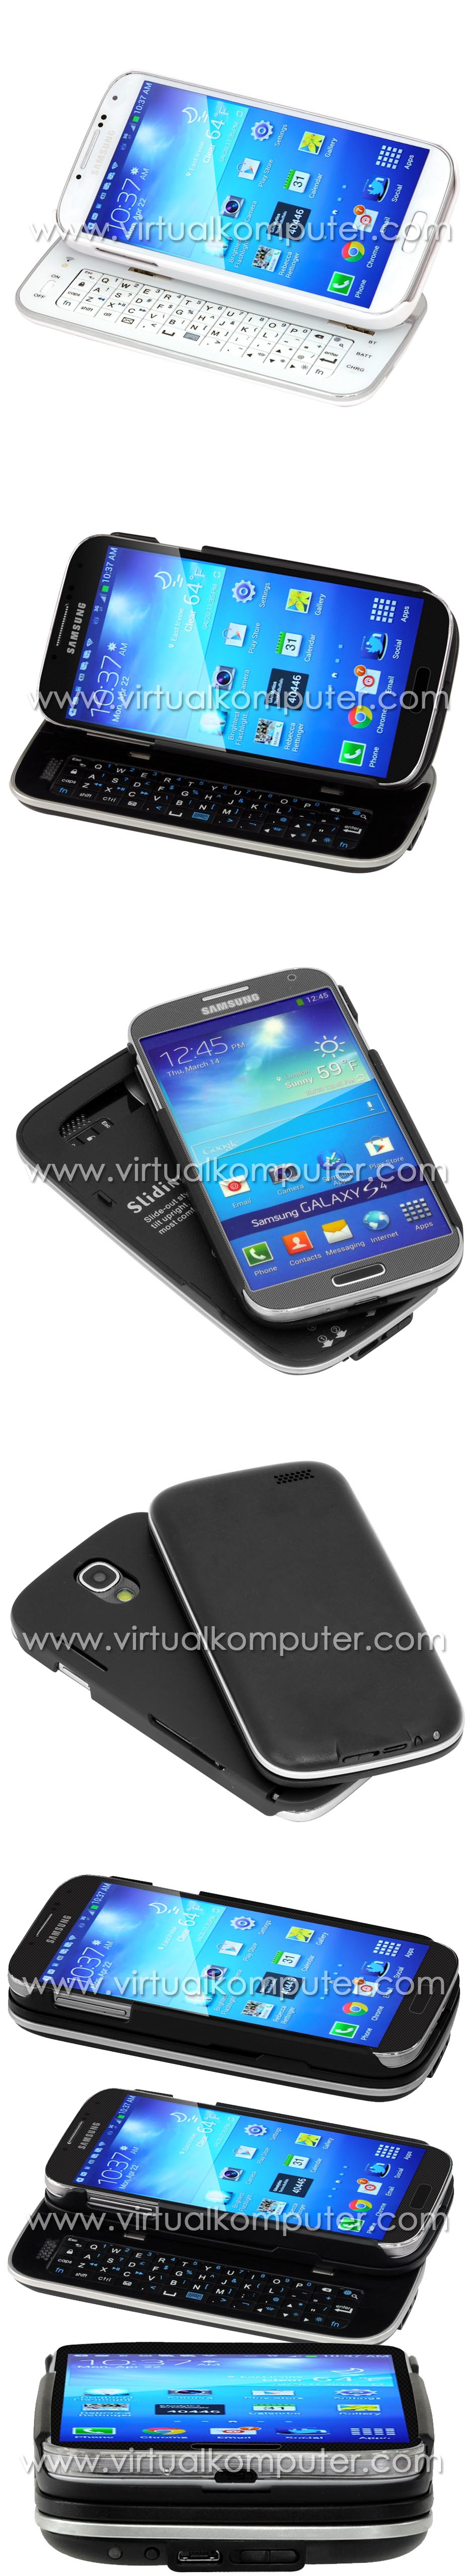 Keyboard Case for Samsung Galaxy S4 I9500 Overview